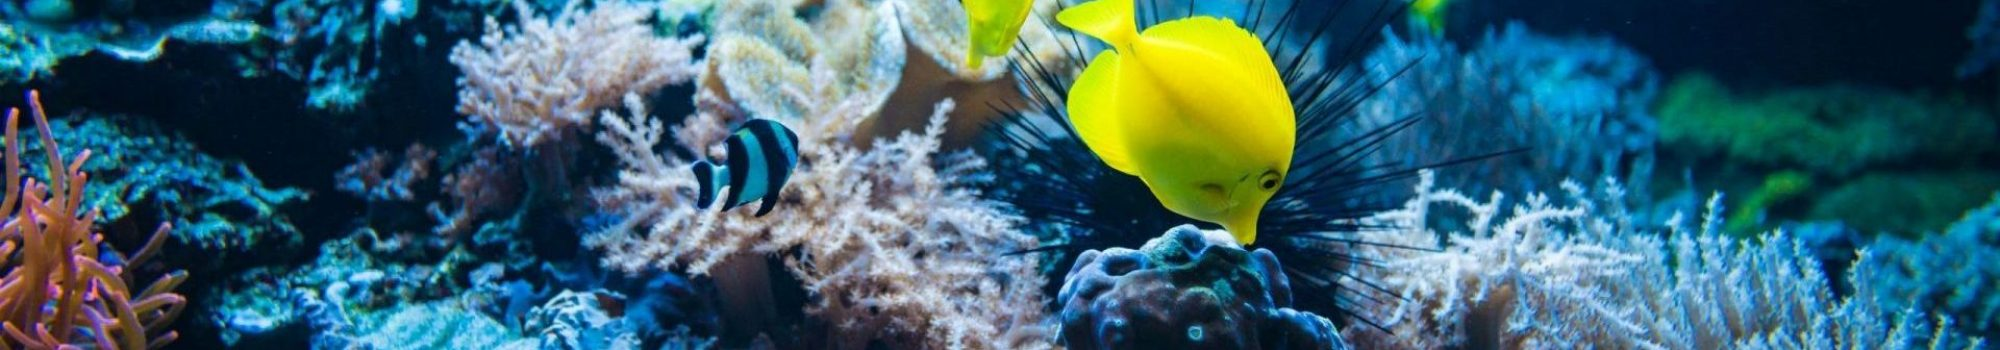 tropical-fish-on-a-coral-reef-colourfull-fishes-in-RSJAB9T-min